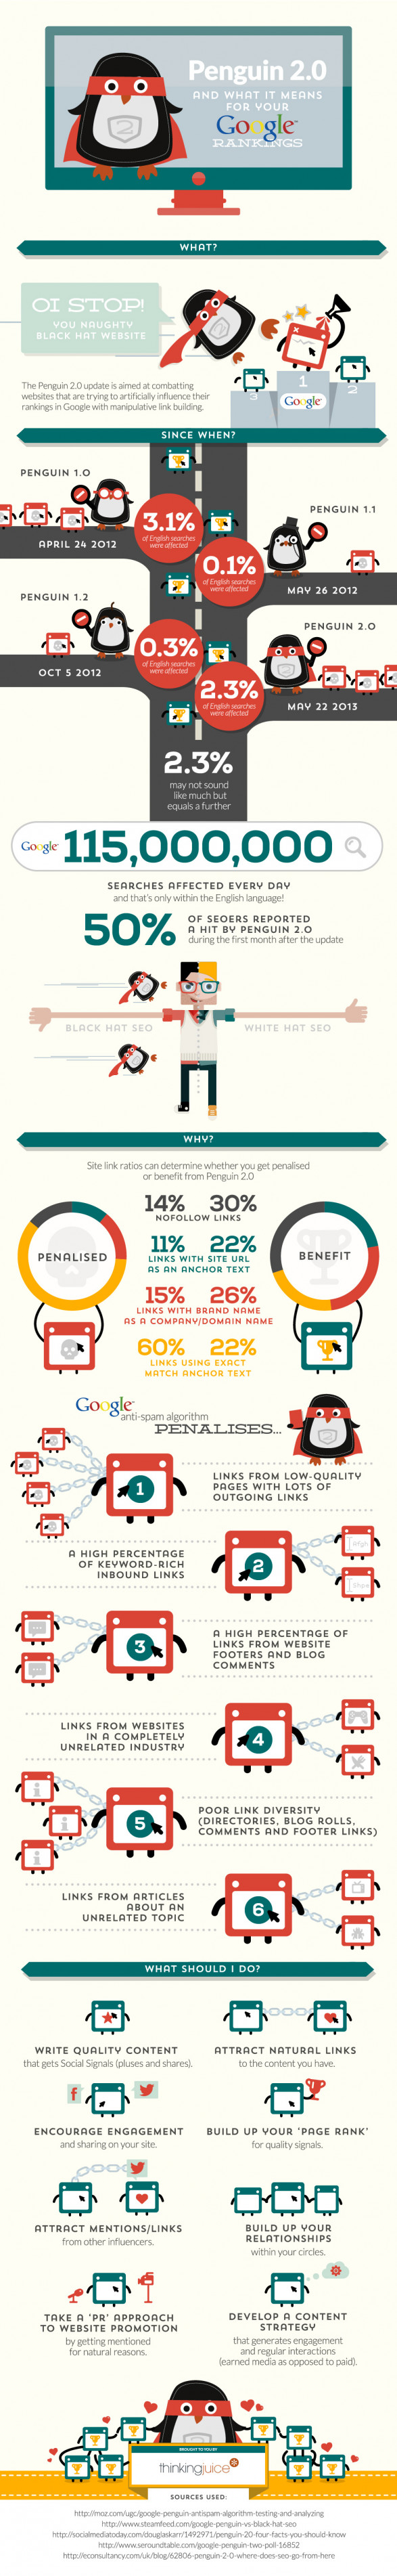 Google Penguin 2.0 Alghorithm Update May 2013 - Infographic